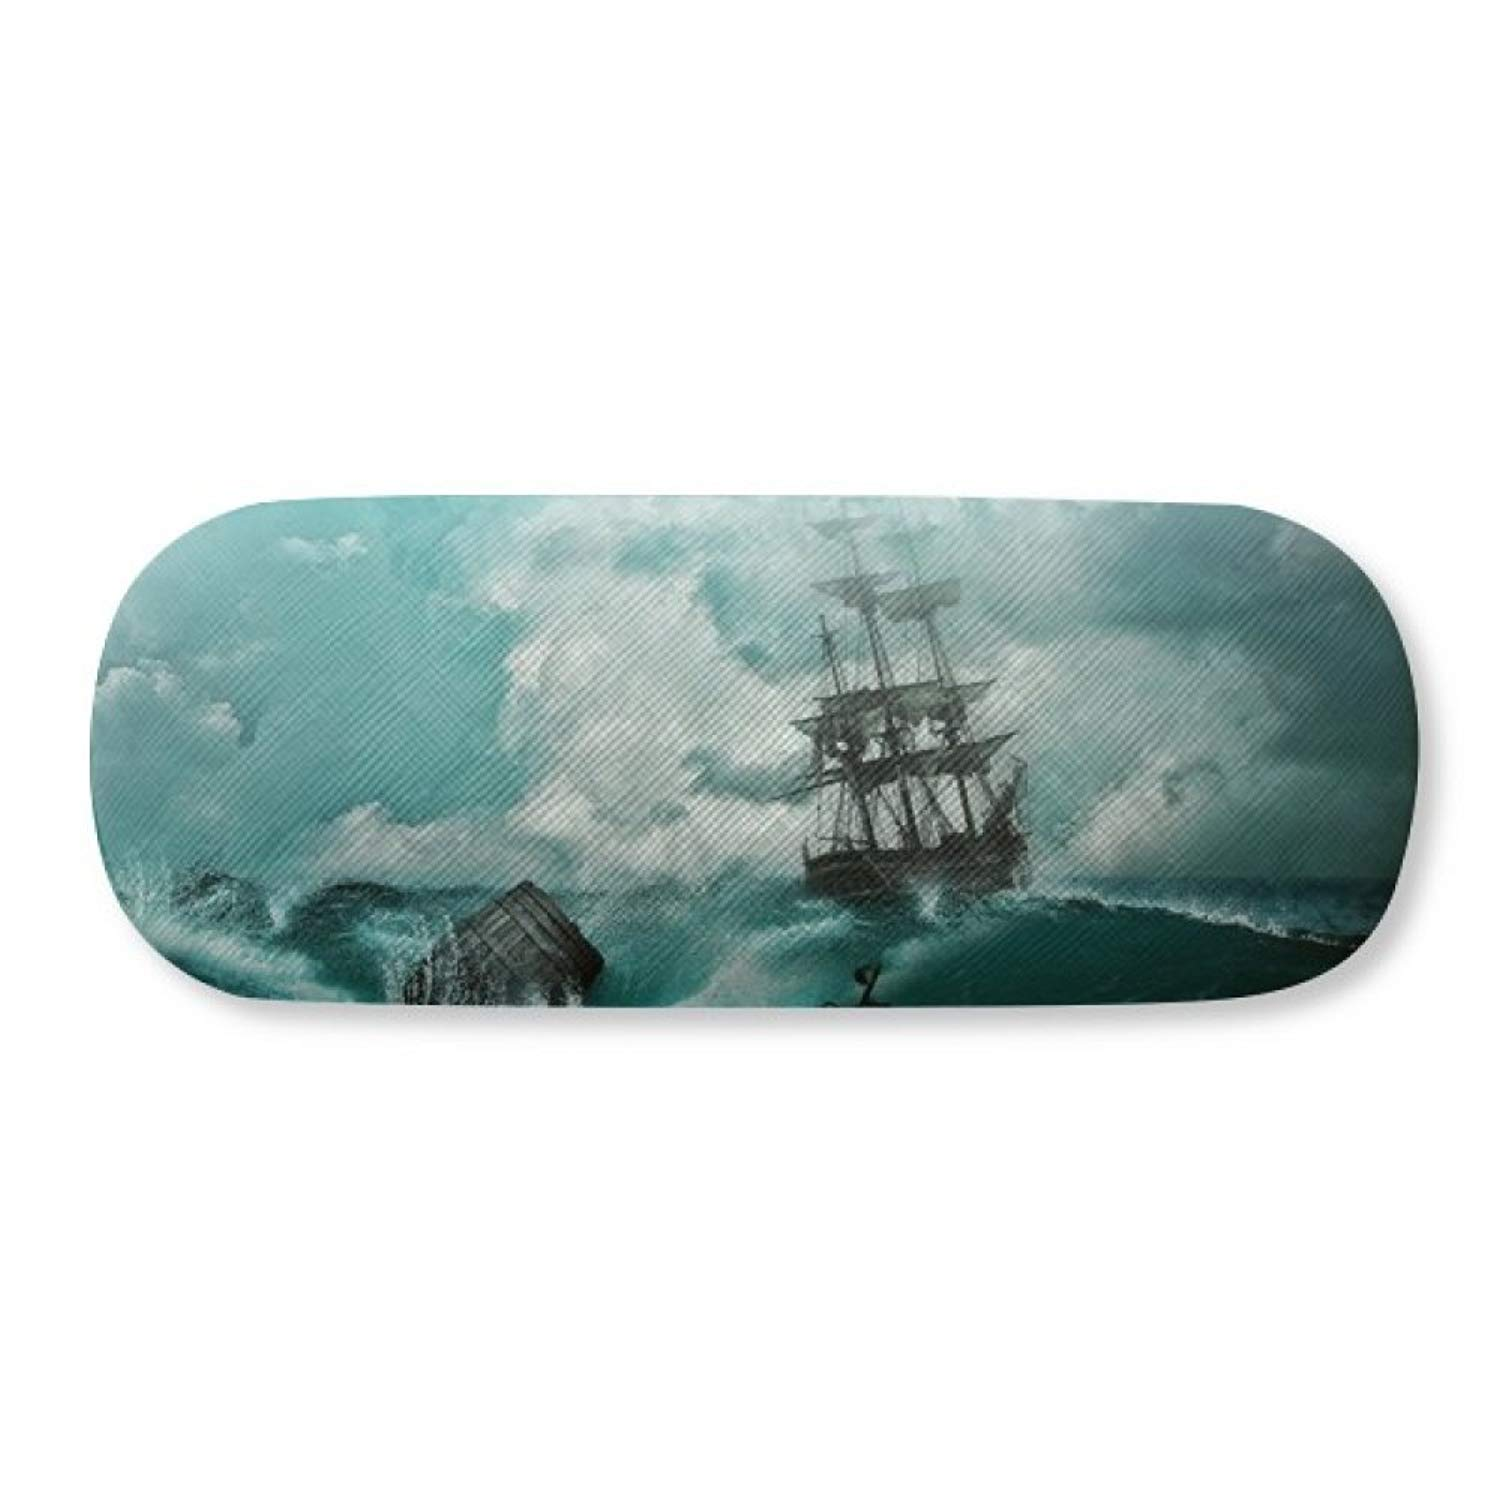 Ocean Water Wave Science Nature Picture Glasses Case Eyeglasses Clam Shell Holder Storage Box